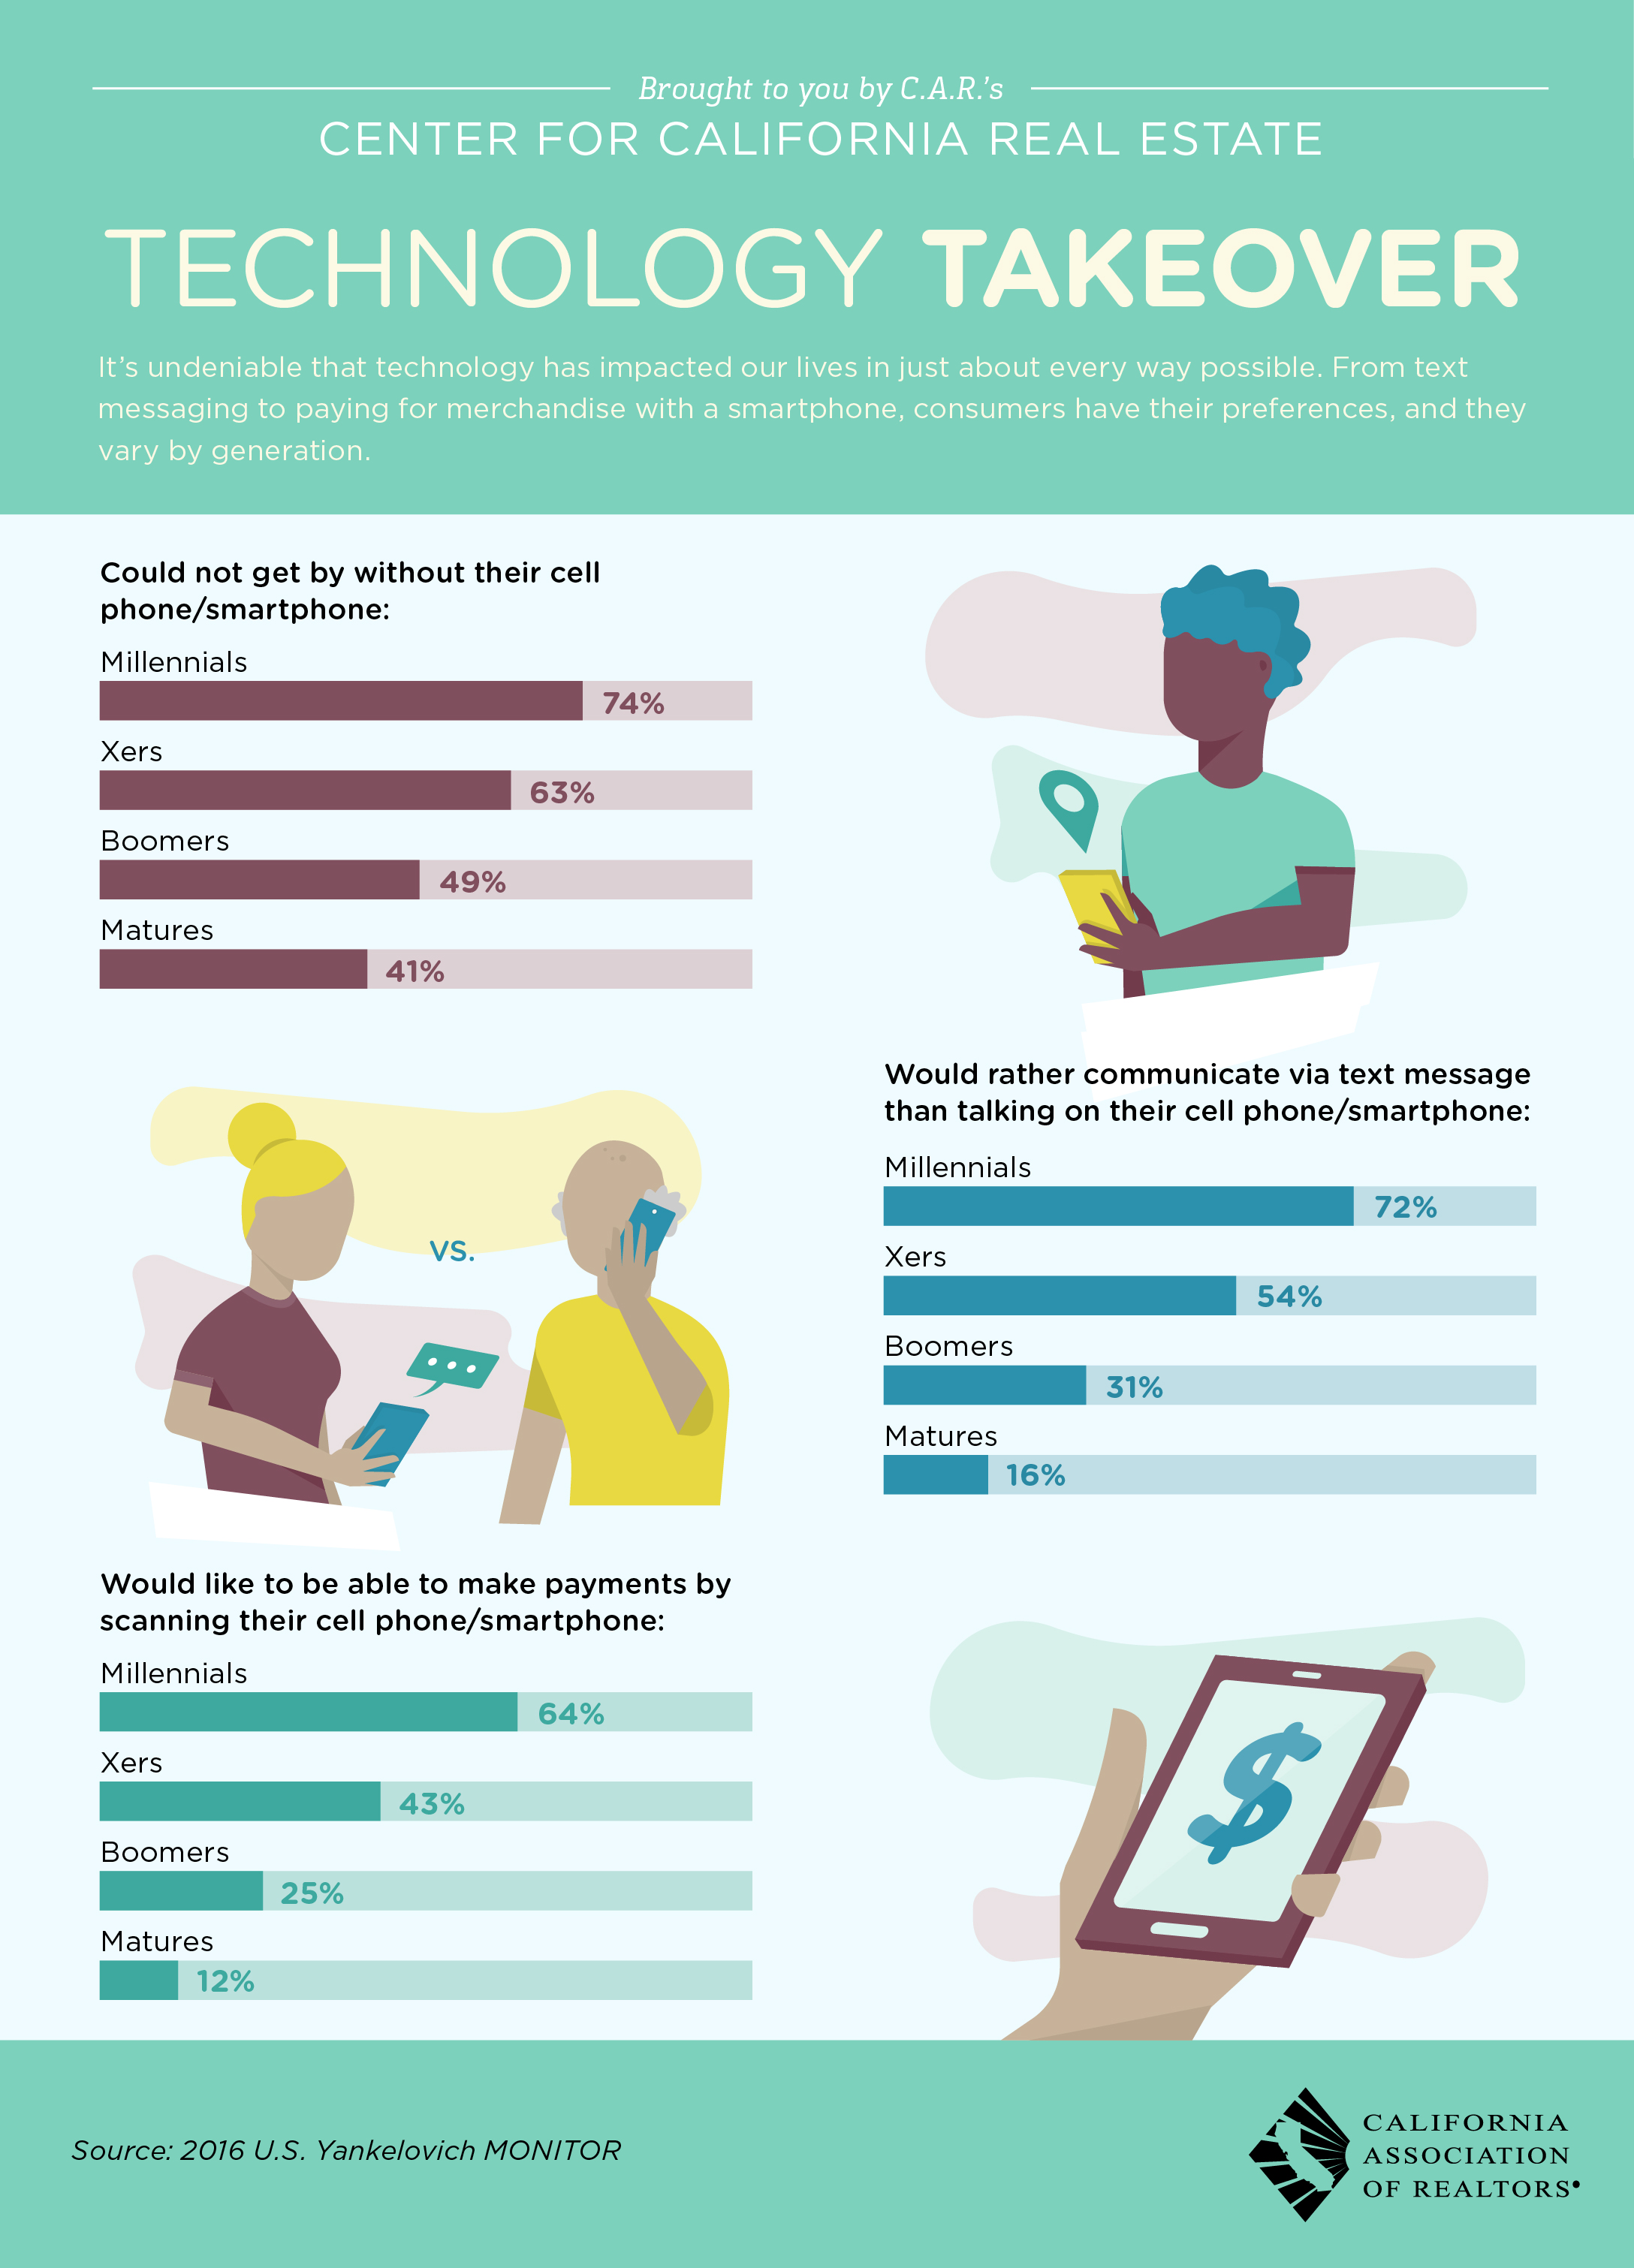 Technology use by generation